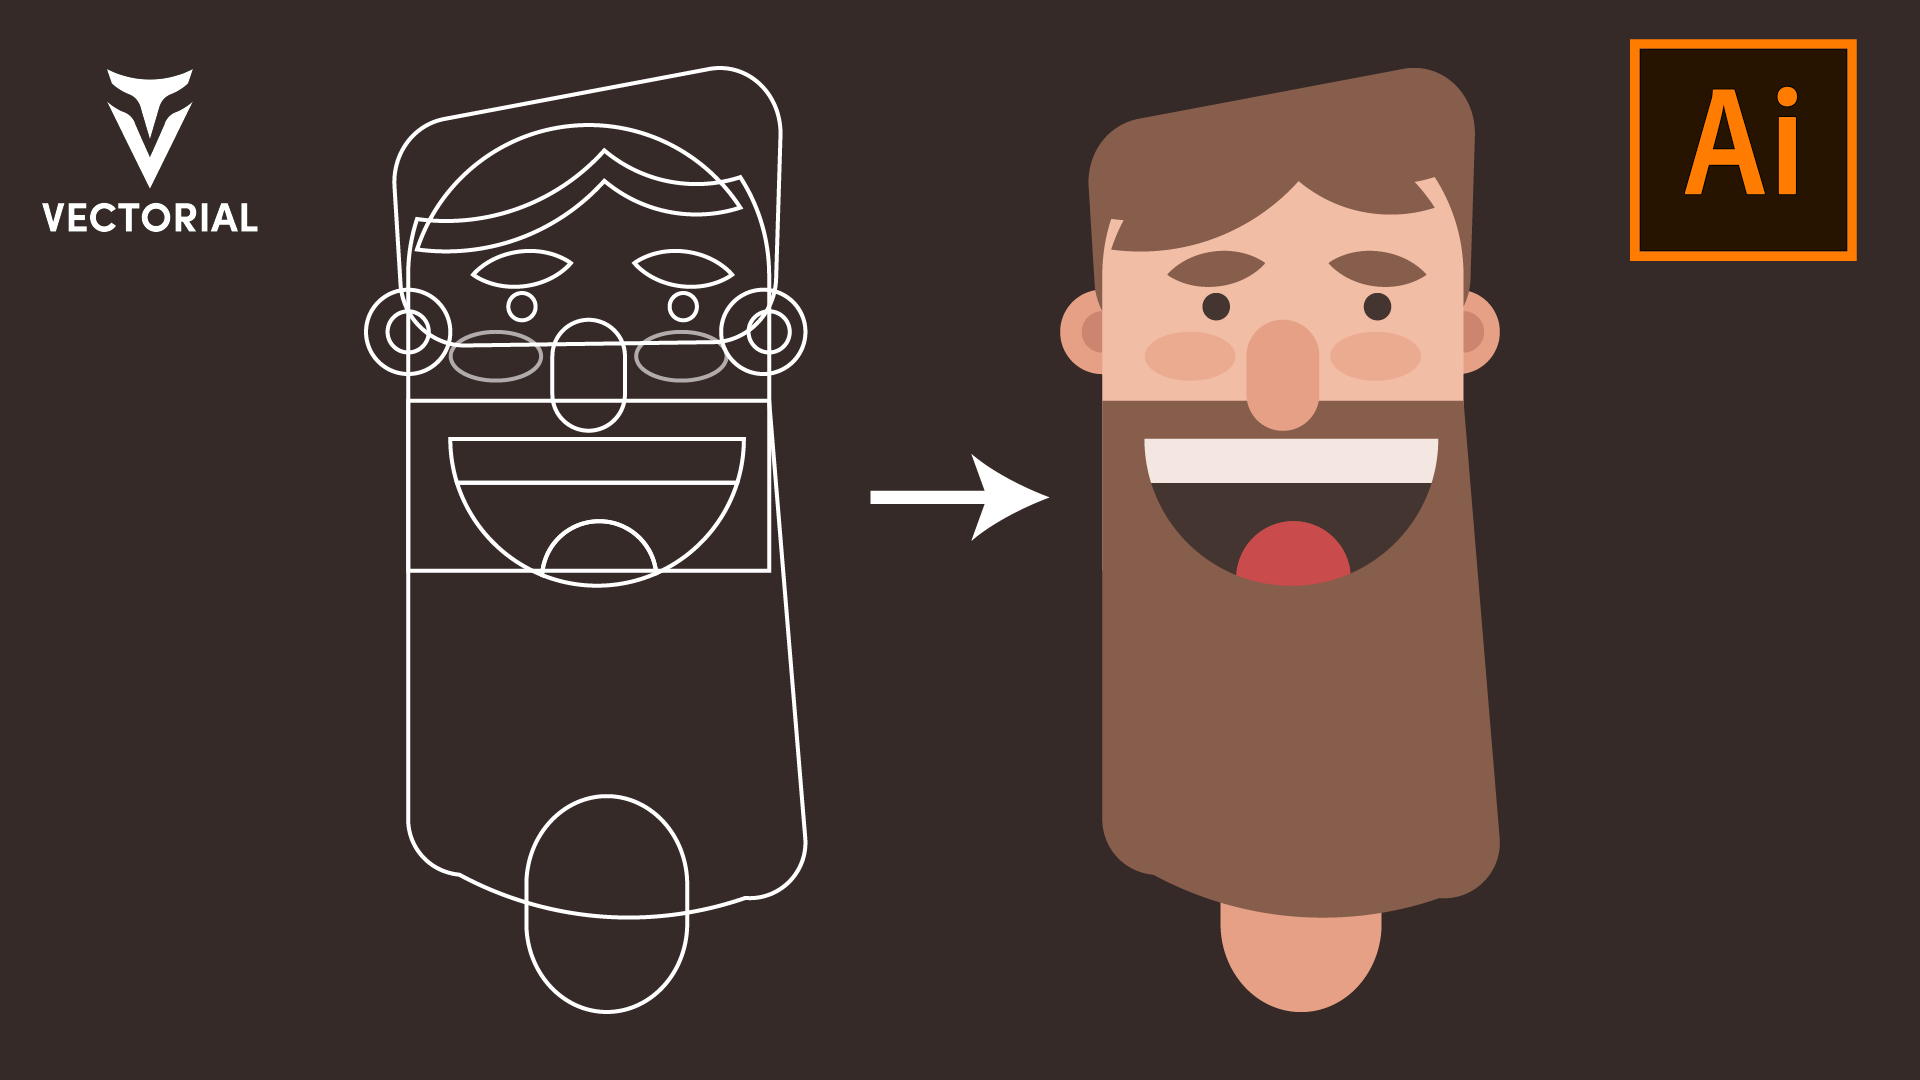 How to draw character in Adobe Illustrator